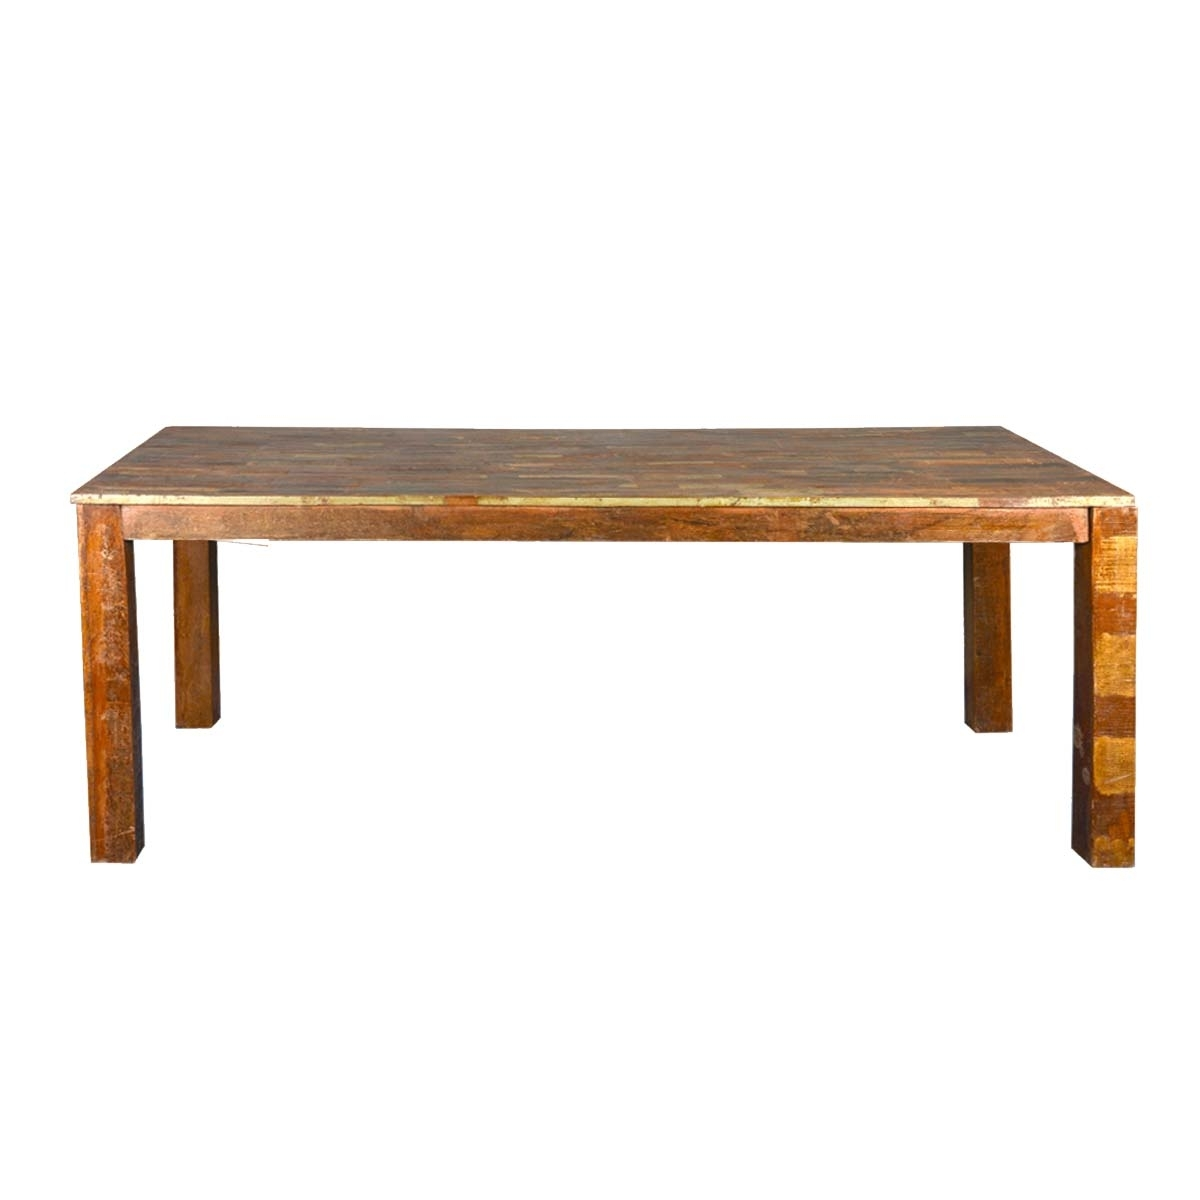 Parquet Dining Tables Throughout Favorite Rustic Parquet Top Reclaimed Wood Dining Table (View 15 of 25)